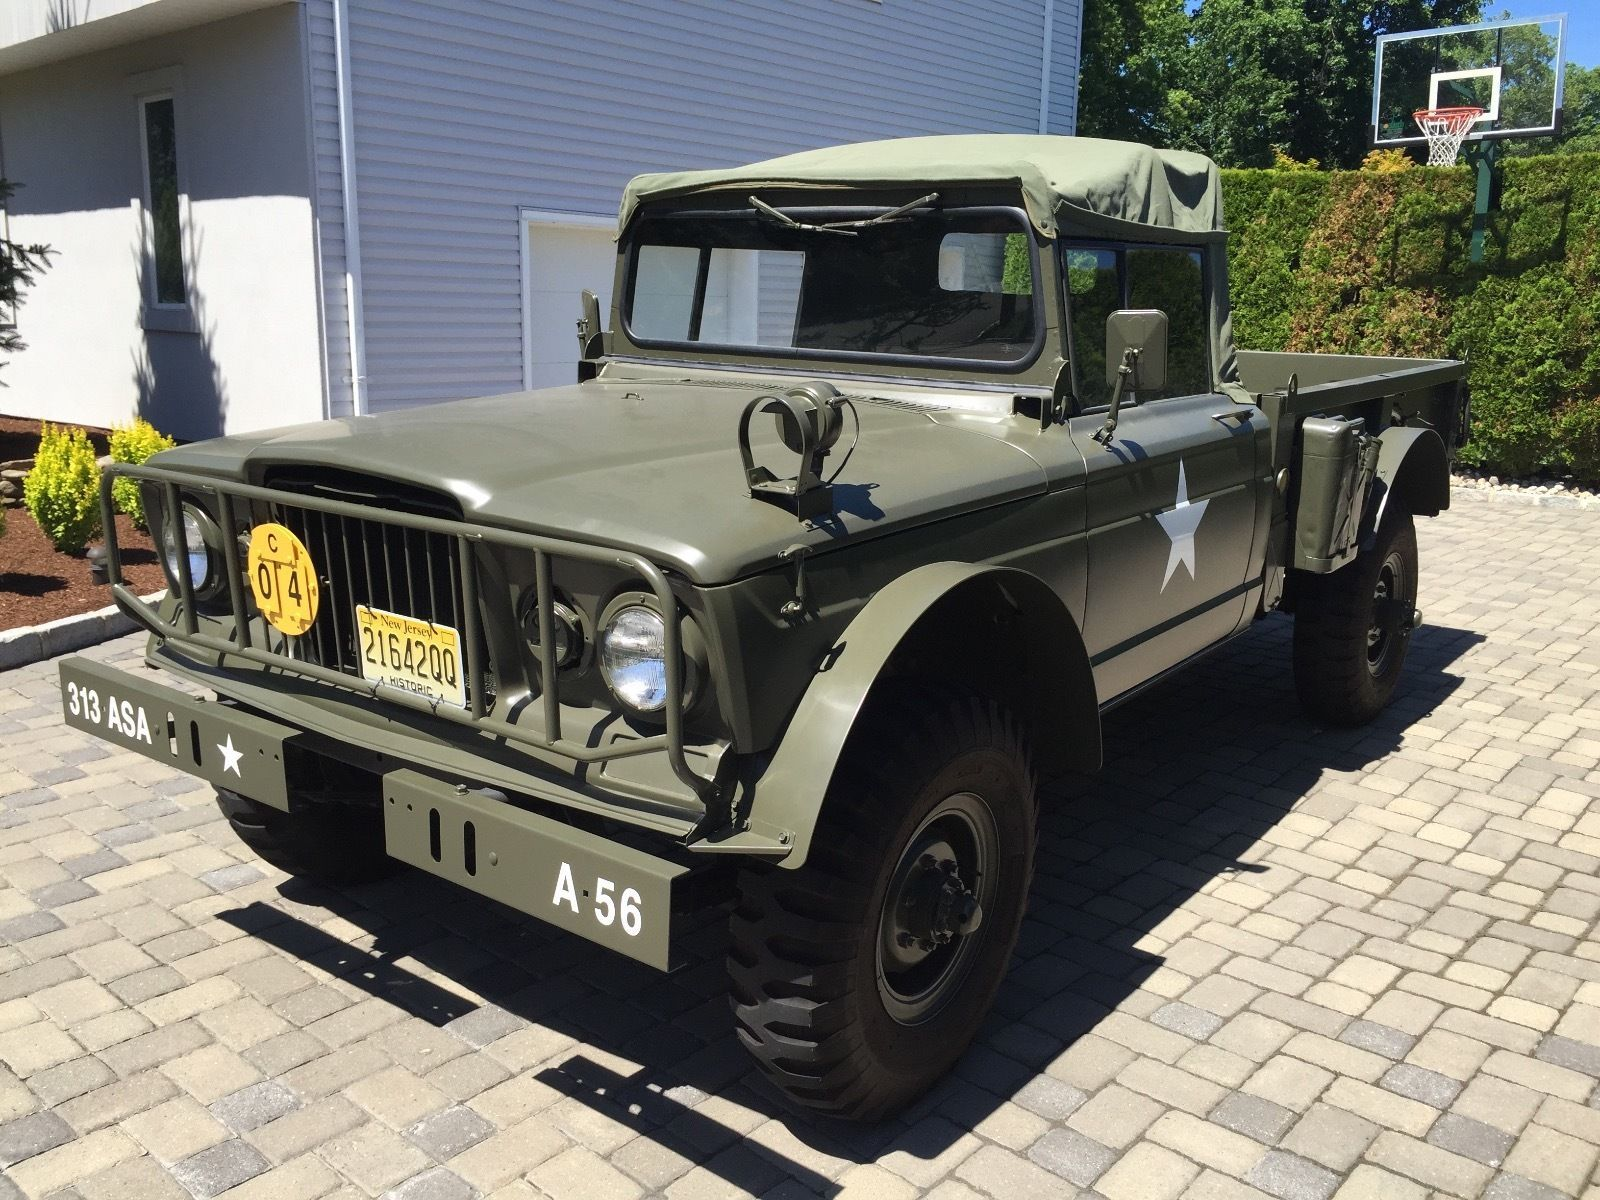 1969 Kaiser Jeep M715 Military Vehicles For Sale Jeep Parts For Sale Jeep Sale